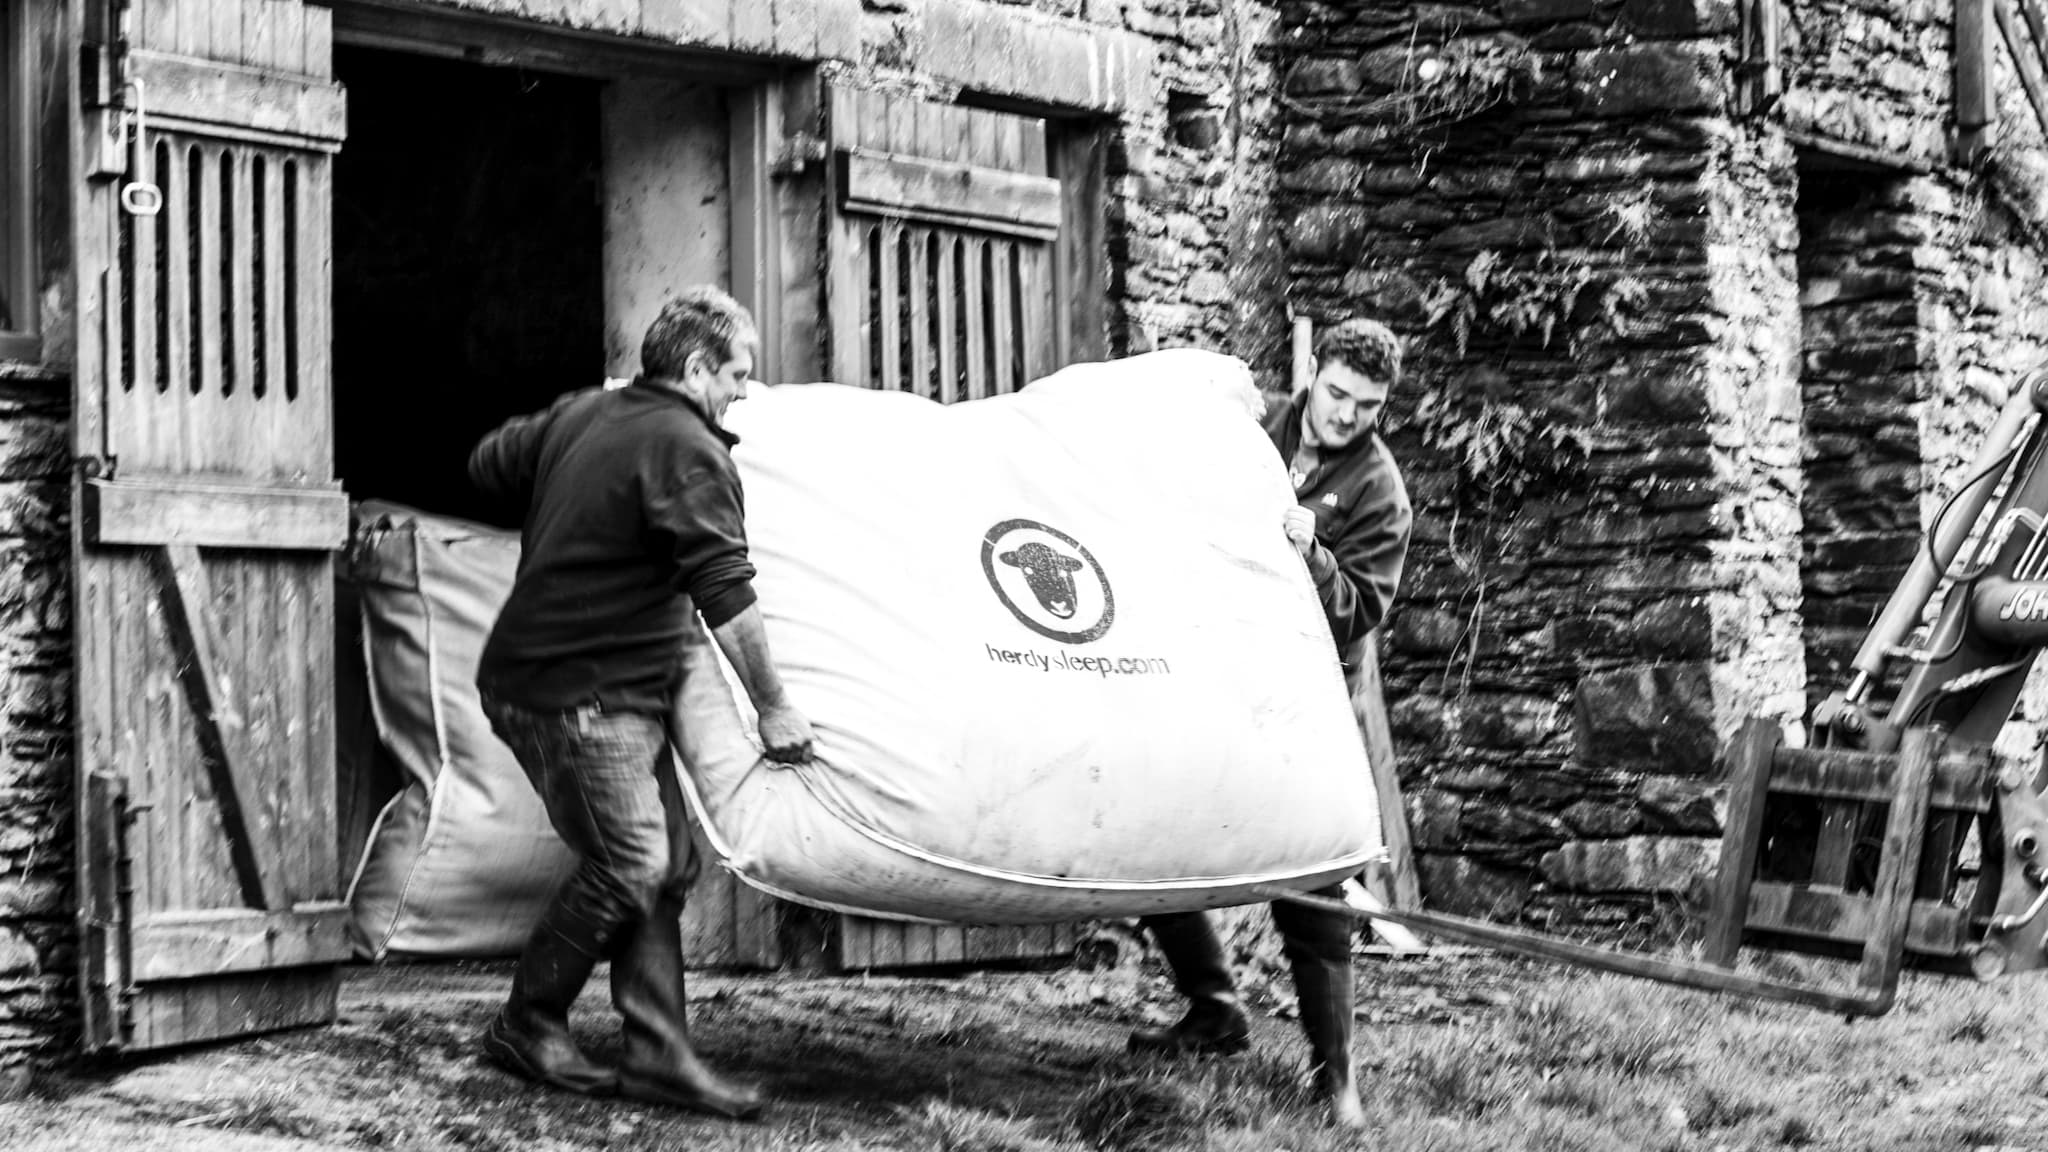 Two Lake District fell farmers carry a heavy woolsack filled with Herdwick wool into a barn, ready for collection by Herdysleep. Photo ©Spencer Hannah.